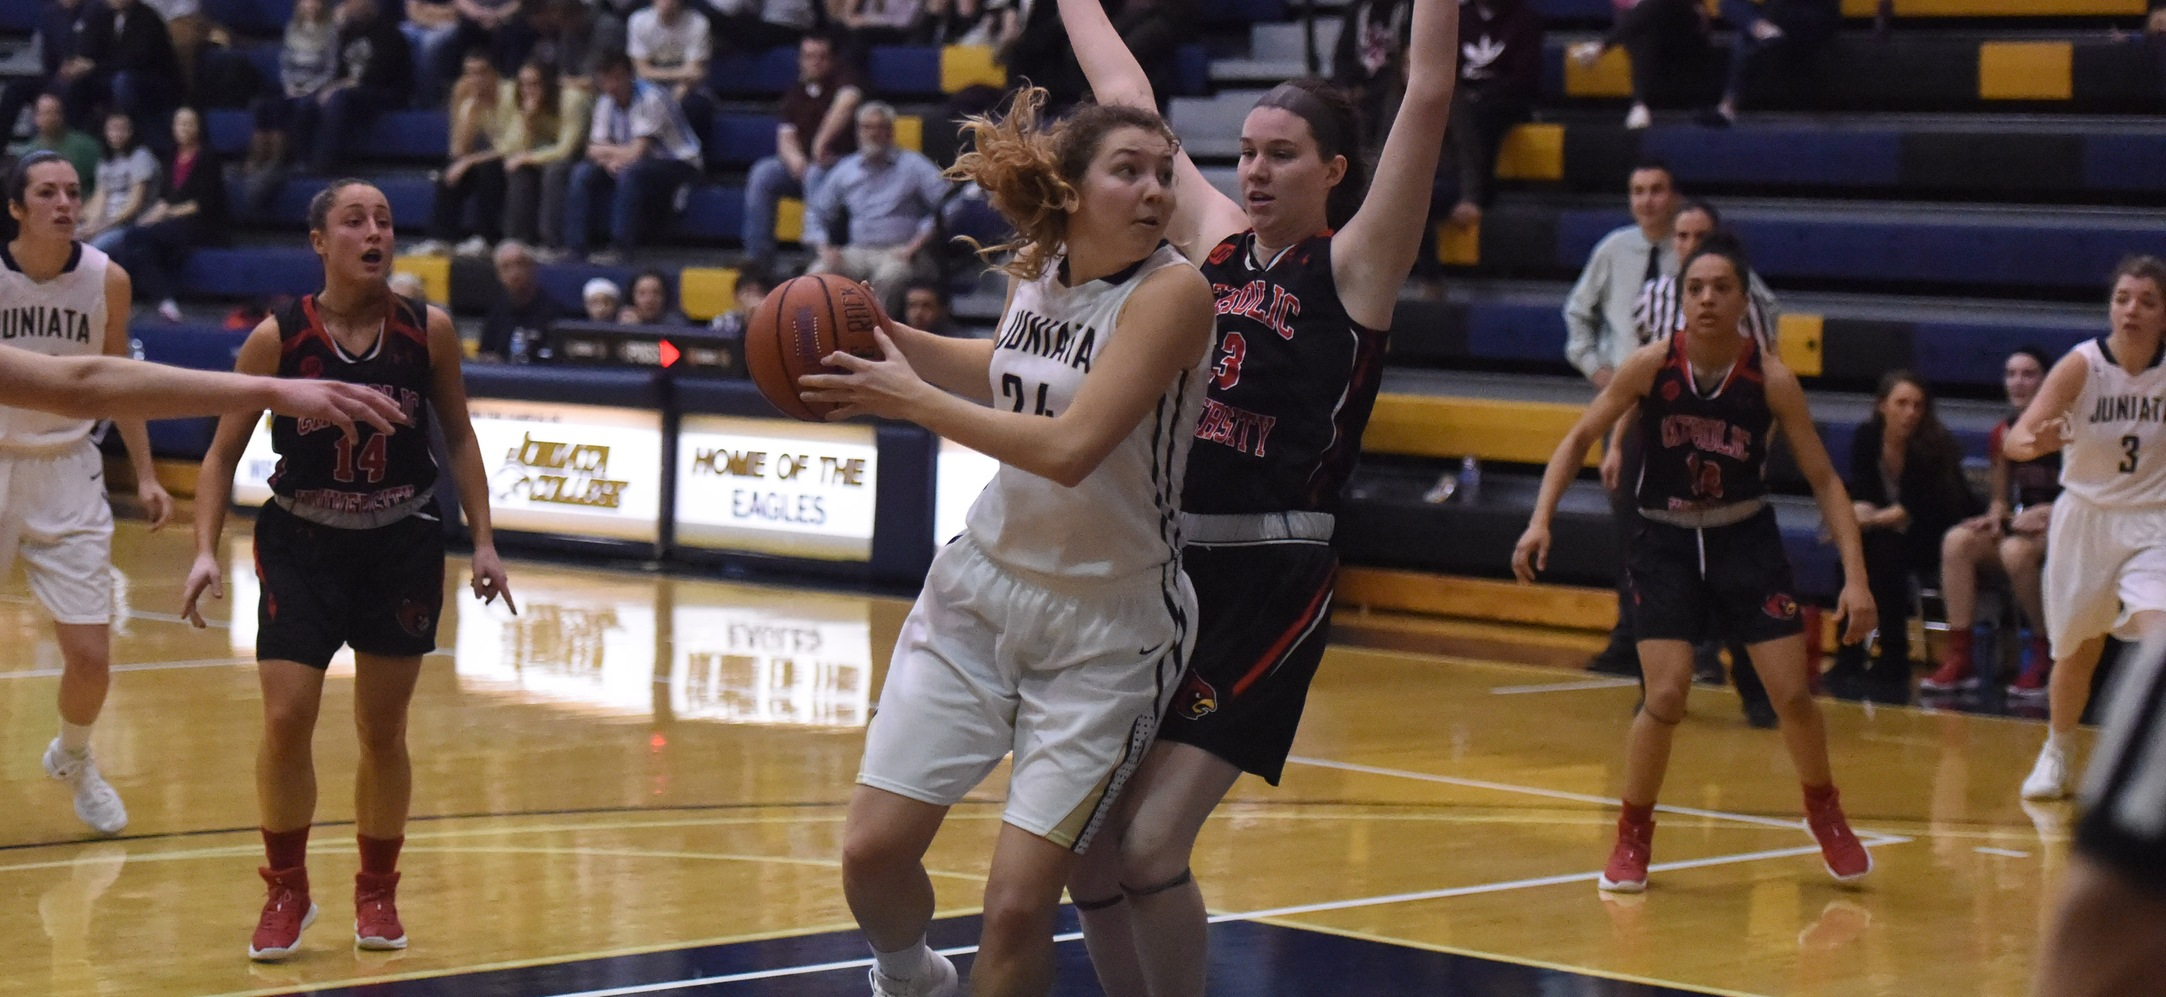 Morgan Instone notched her sixth double-double of the season as she led the team in scoring and rebounding against Catholic.